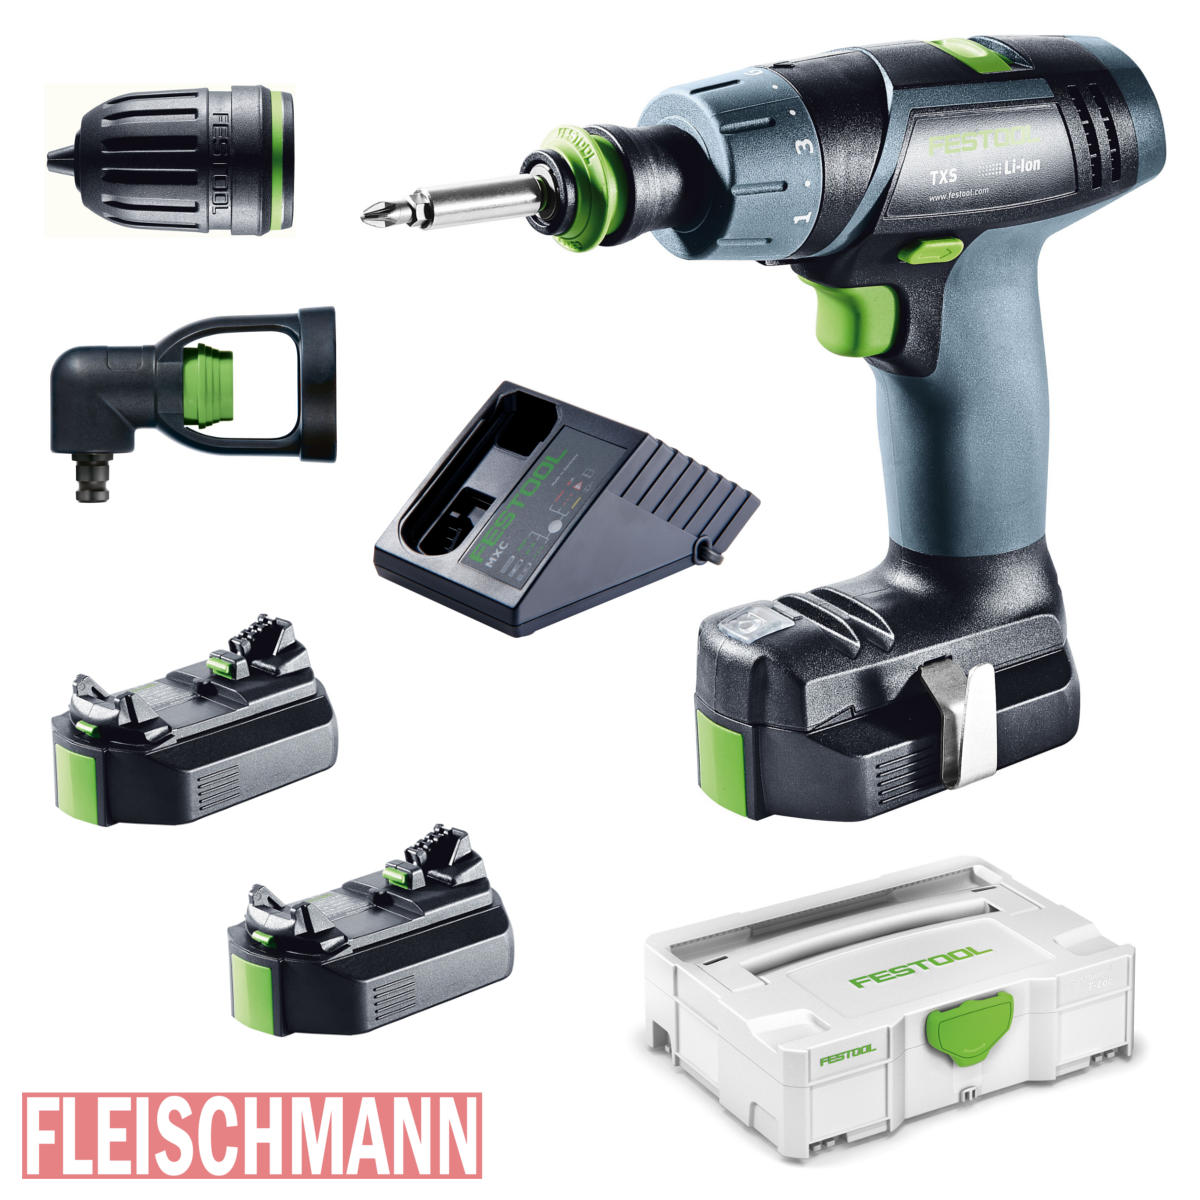 akku bohrschrauber txs li 2 6 set 564510 akkuschrauber festool fleischmann werkzeuge. Black Bedroom Furniture Sets. Home Design Ideas